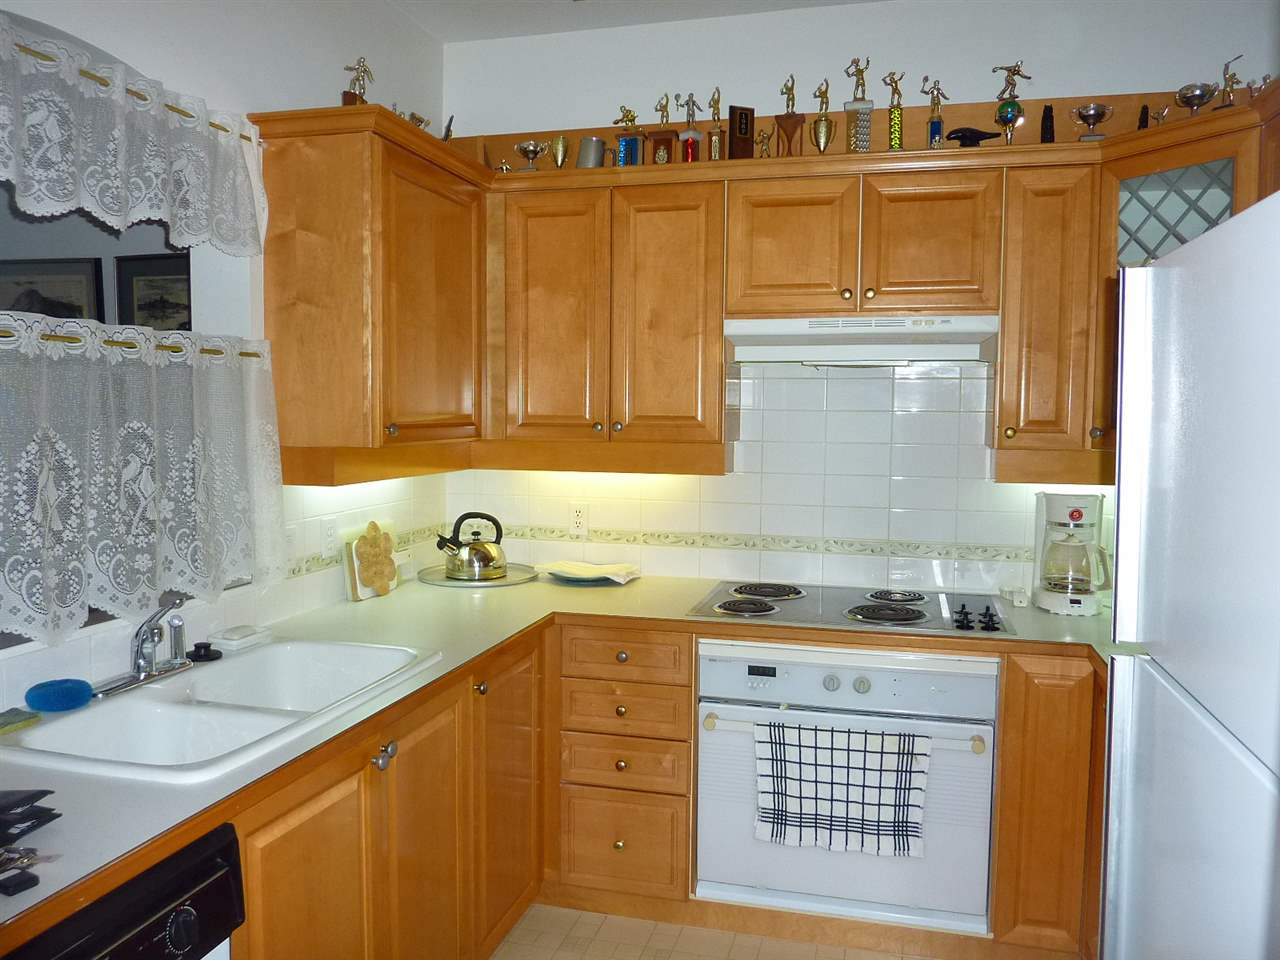 Photo 11: 115 8975 JONES Road in Richmond: Brighouse South Condo for sale : MLS(r) # R2170638